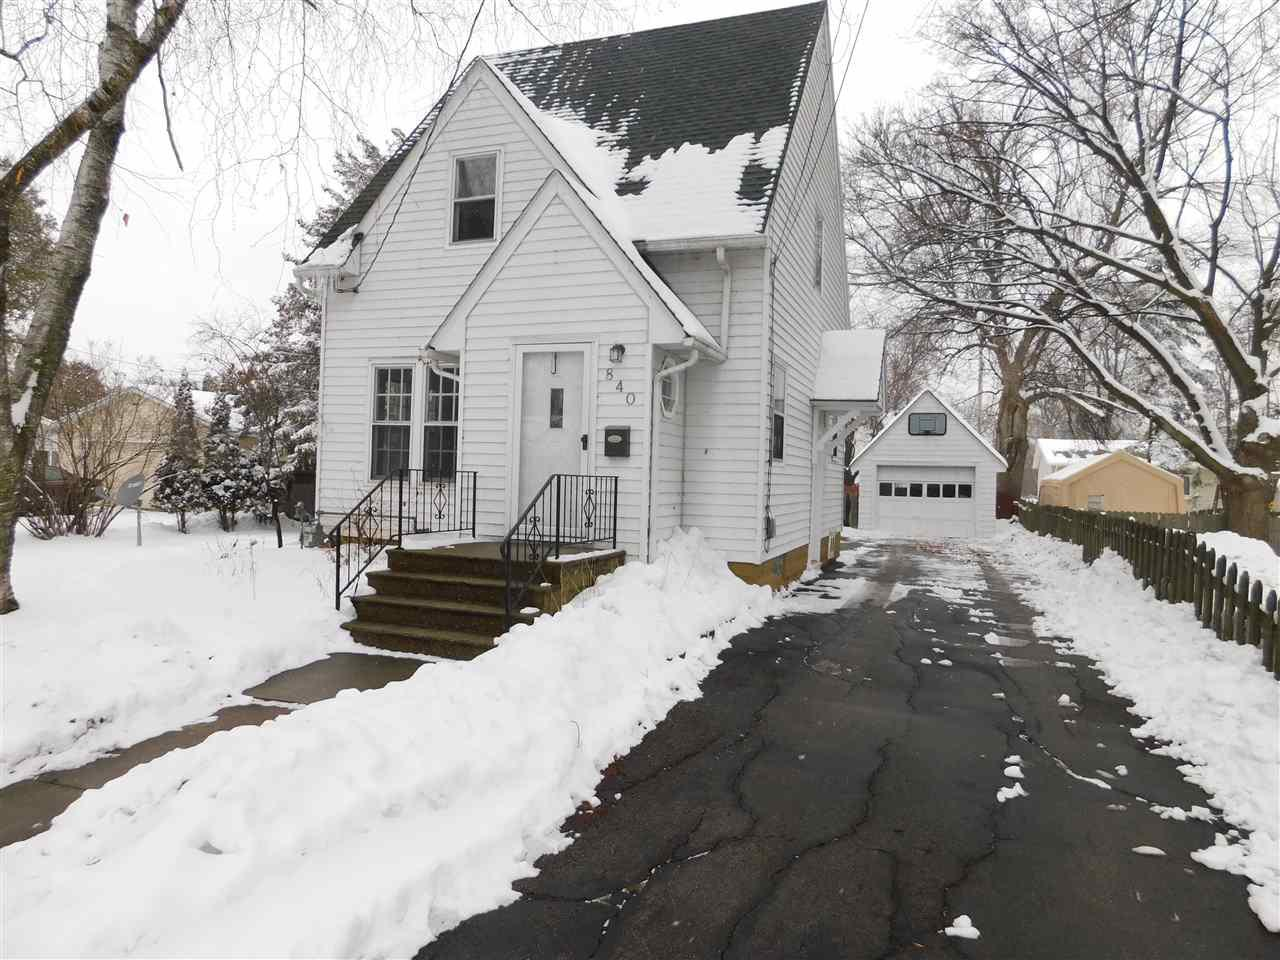 Beautiful cape cod with tons of character in a convenient Menasha location. This home features hardwood floors throughout, stainless steel appliances, and an awesome fenced in backyard.  Schedule your showing today!